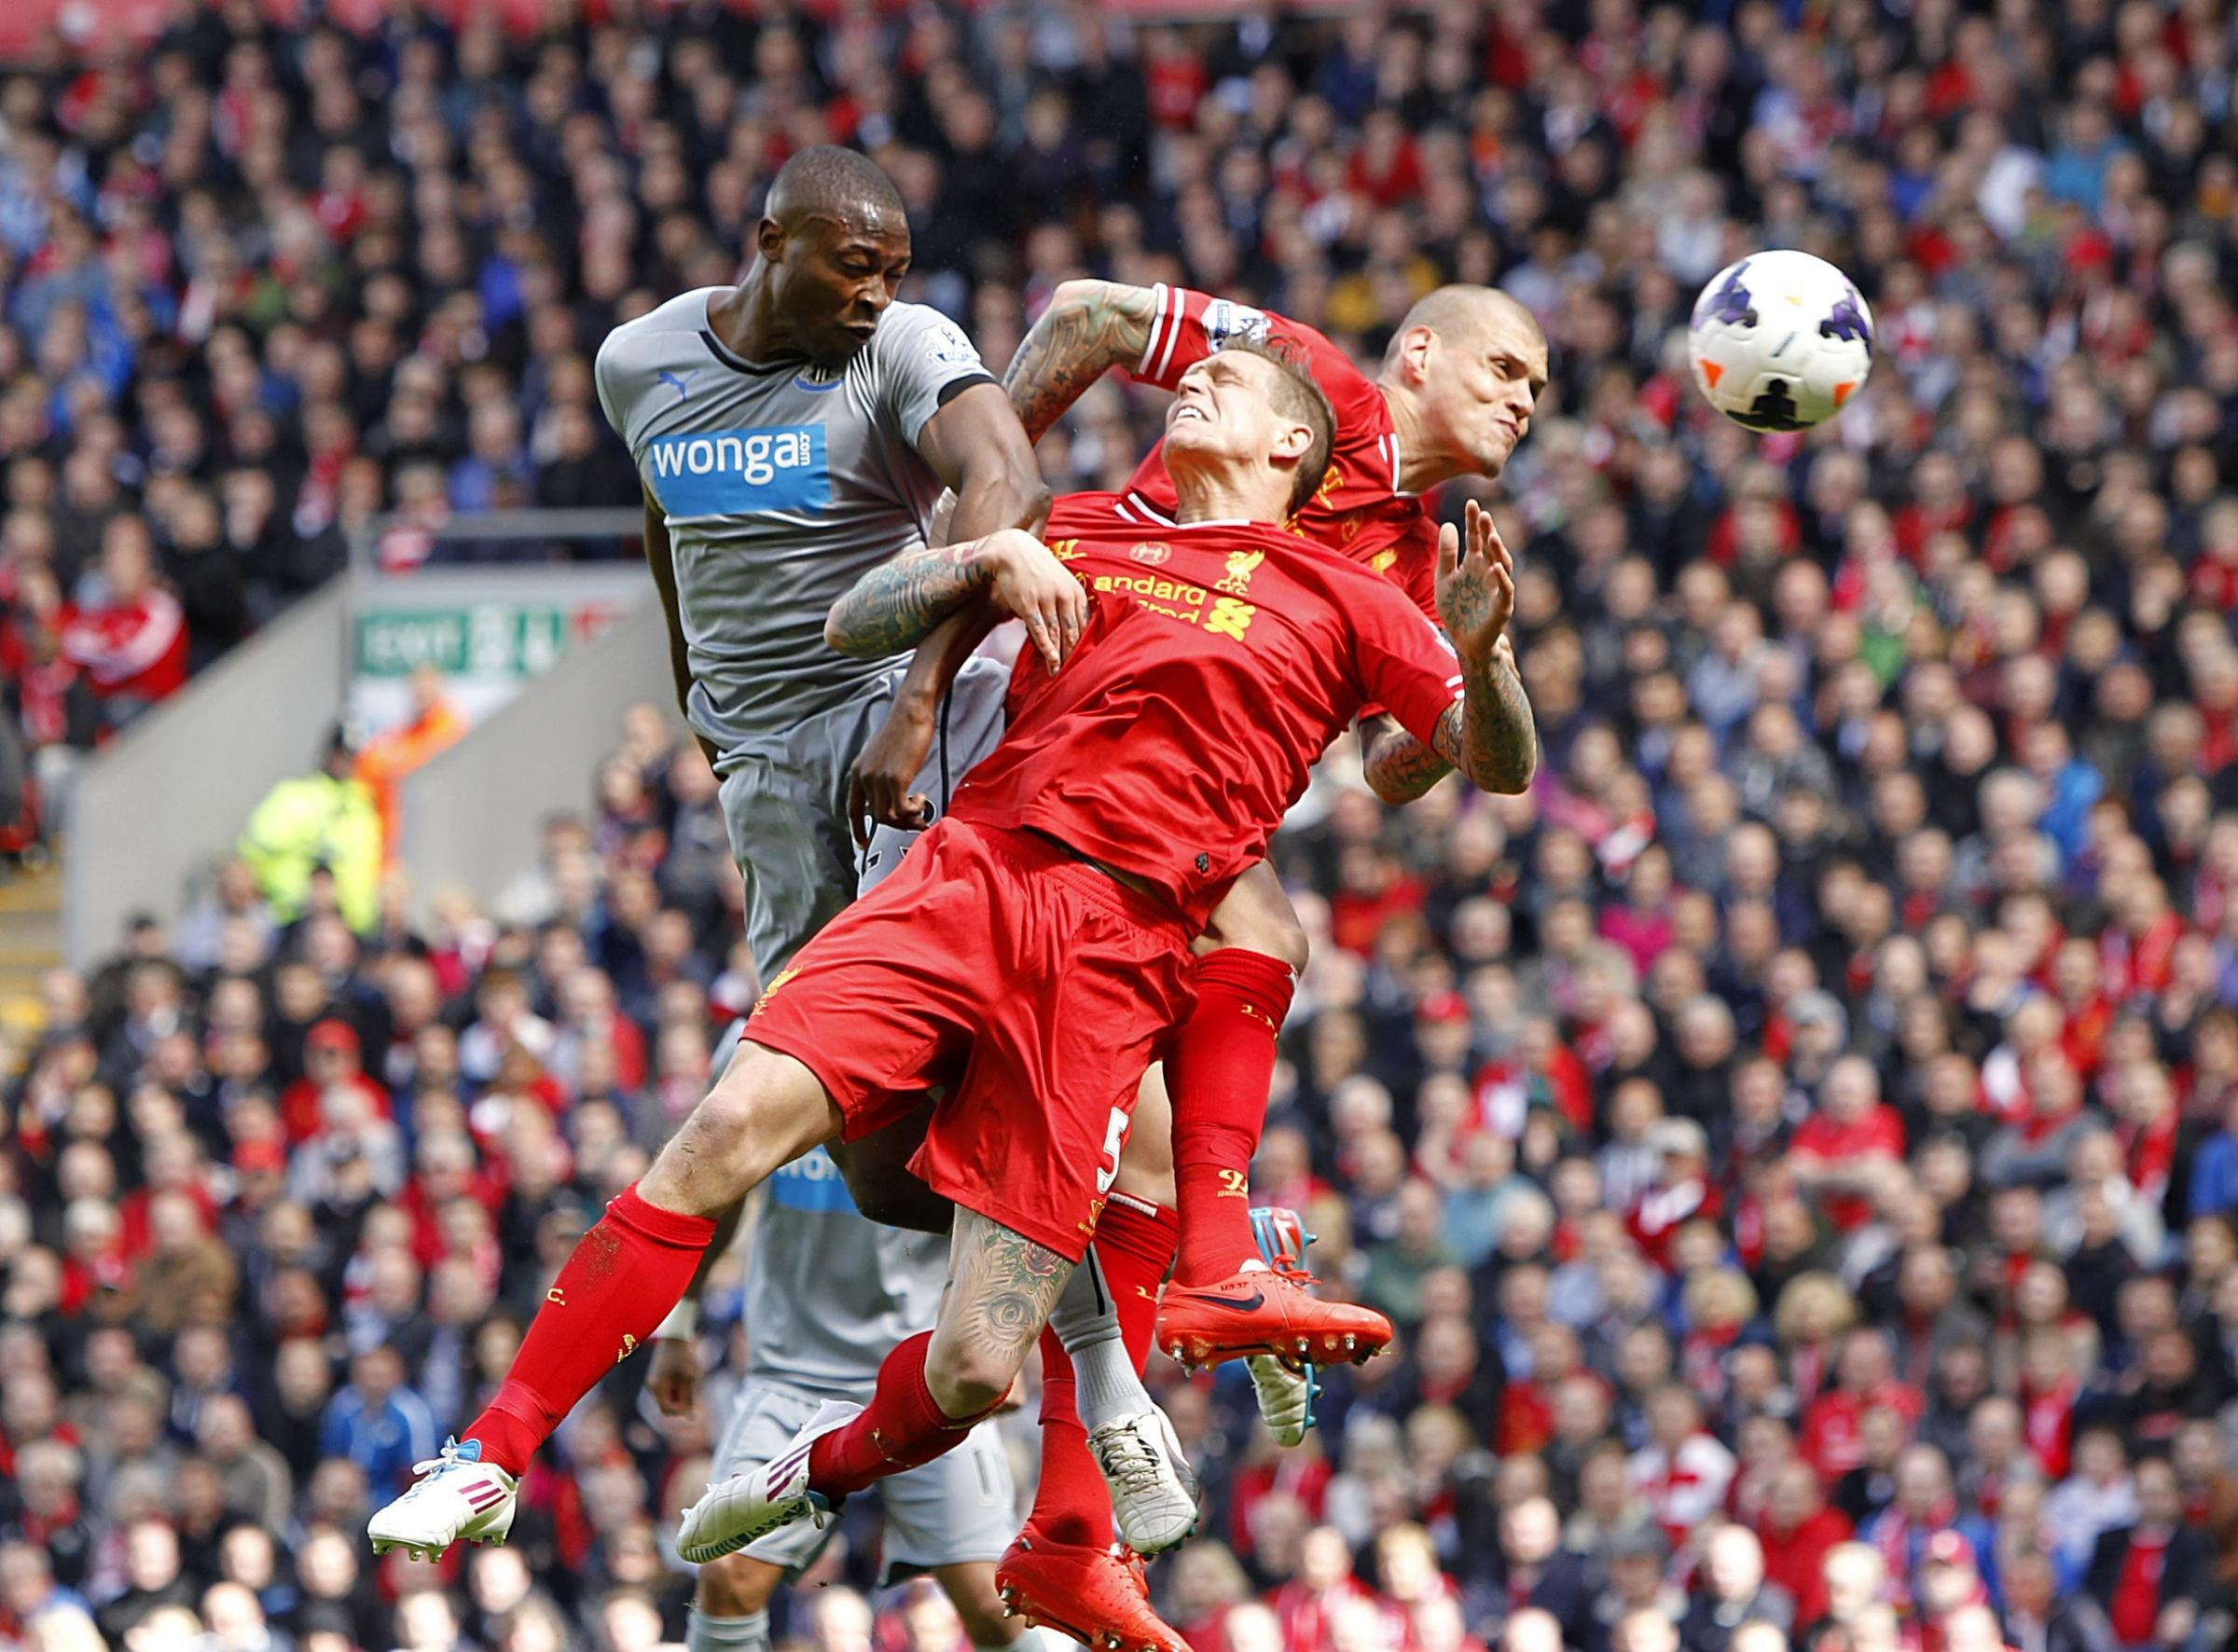 Anfield defeat: Newcastle striker Shola Ameobi battles for the ball with Liverpool's Daniel Agger and Martin Skrtel during the 2-1 defeat at Anfield on Sunday. PRESS ASSOCIATION Photo.